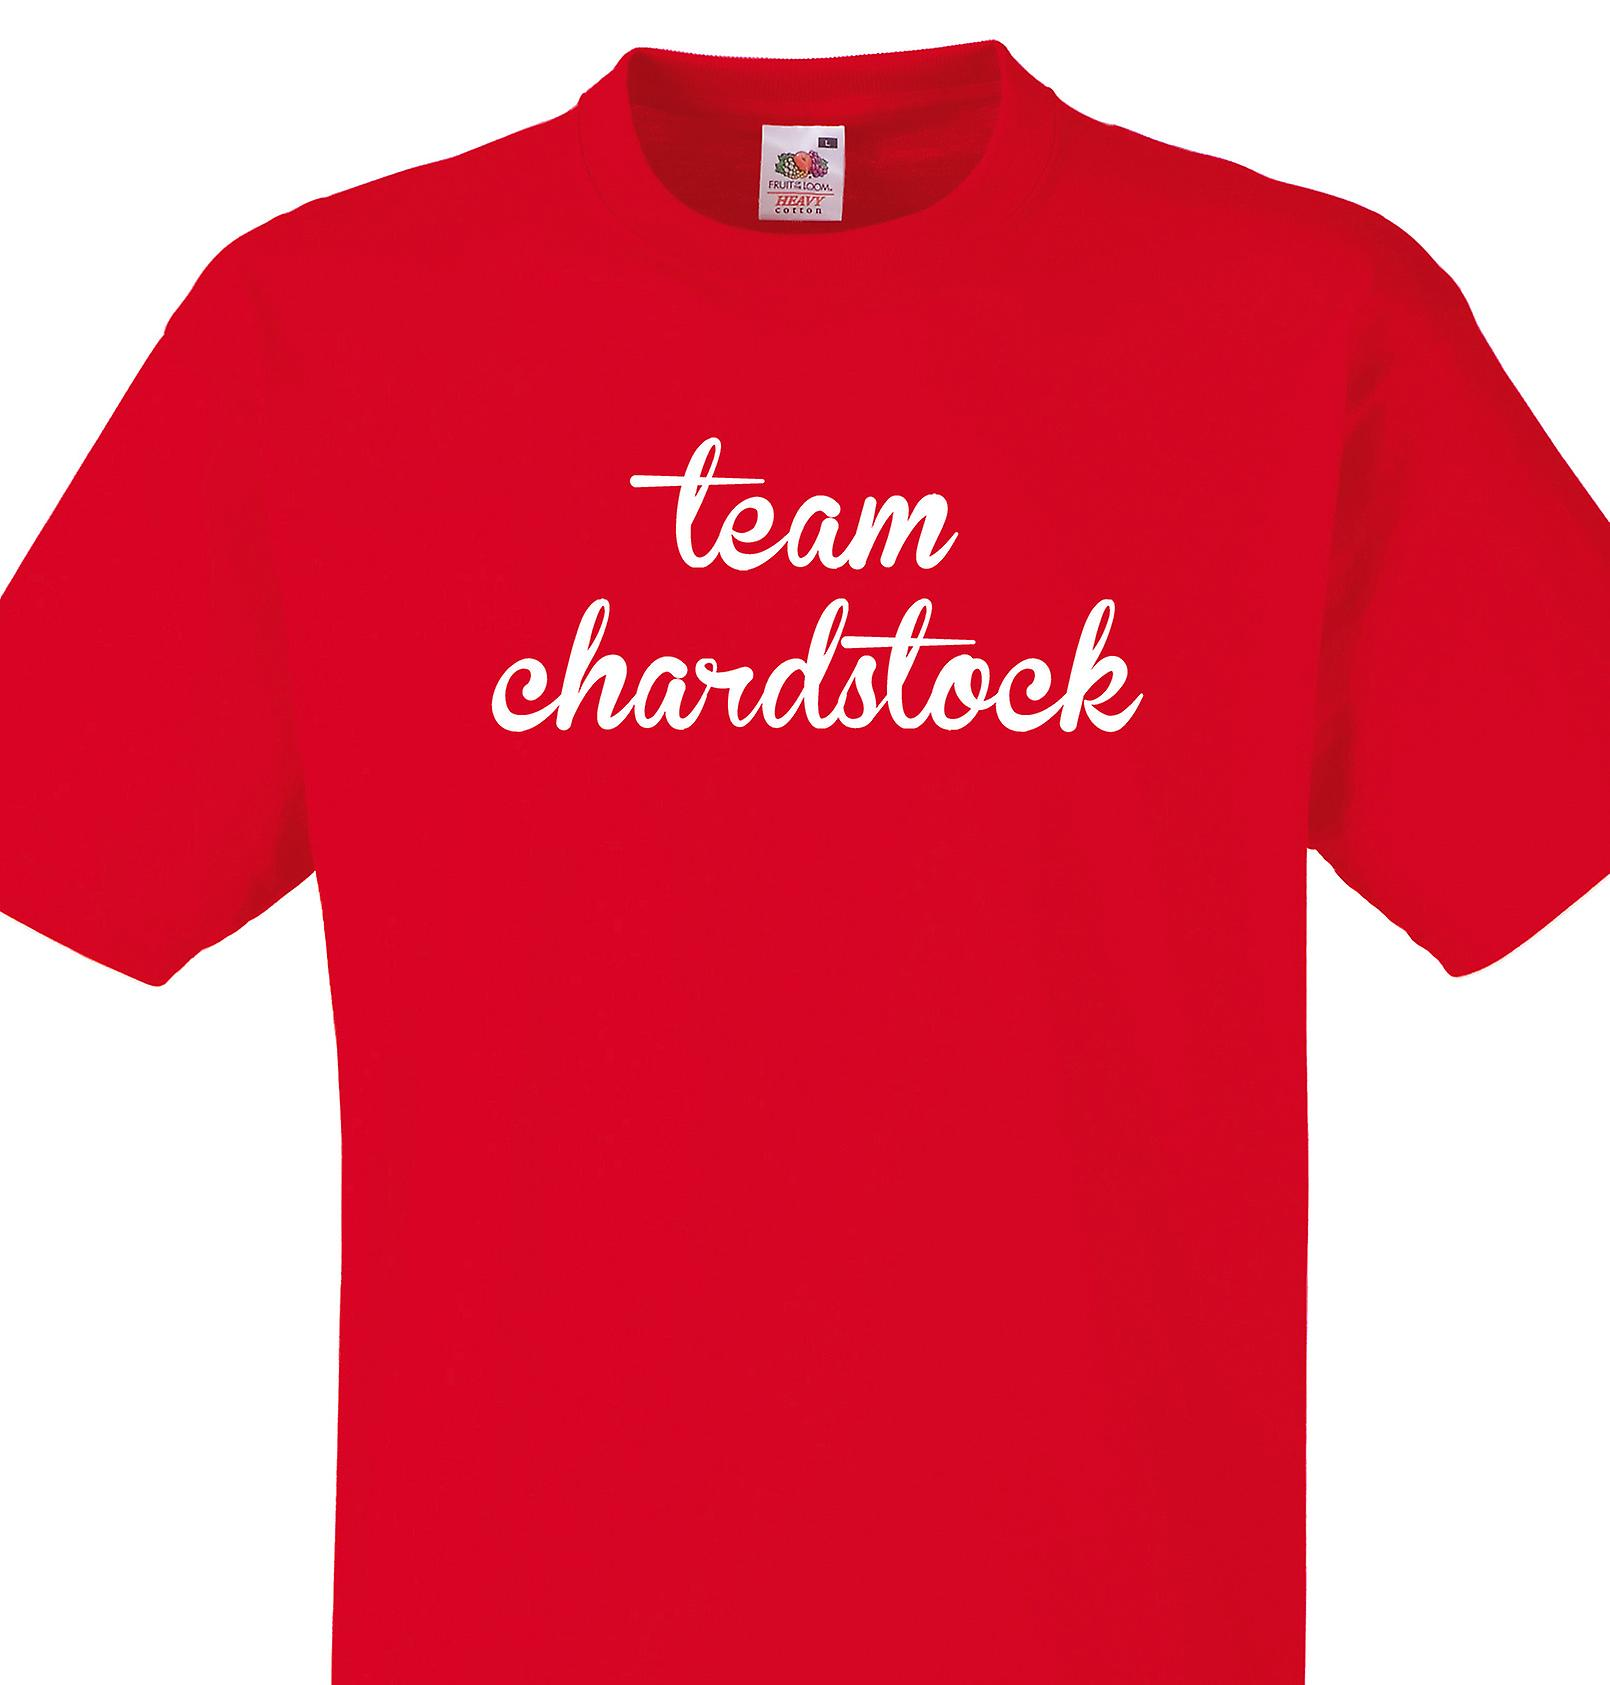 Team Chardstock Red T shirt